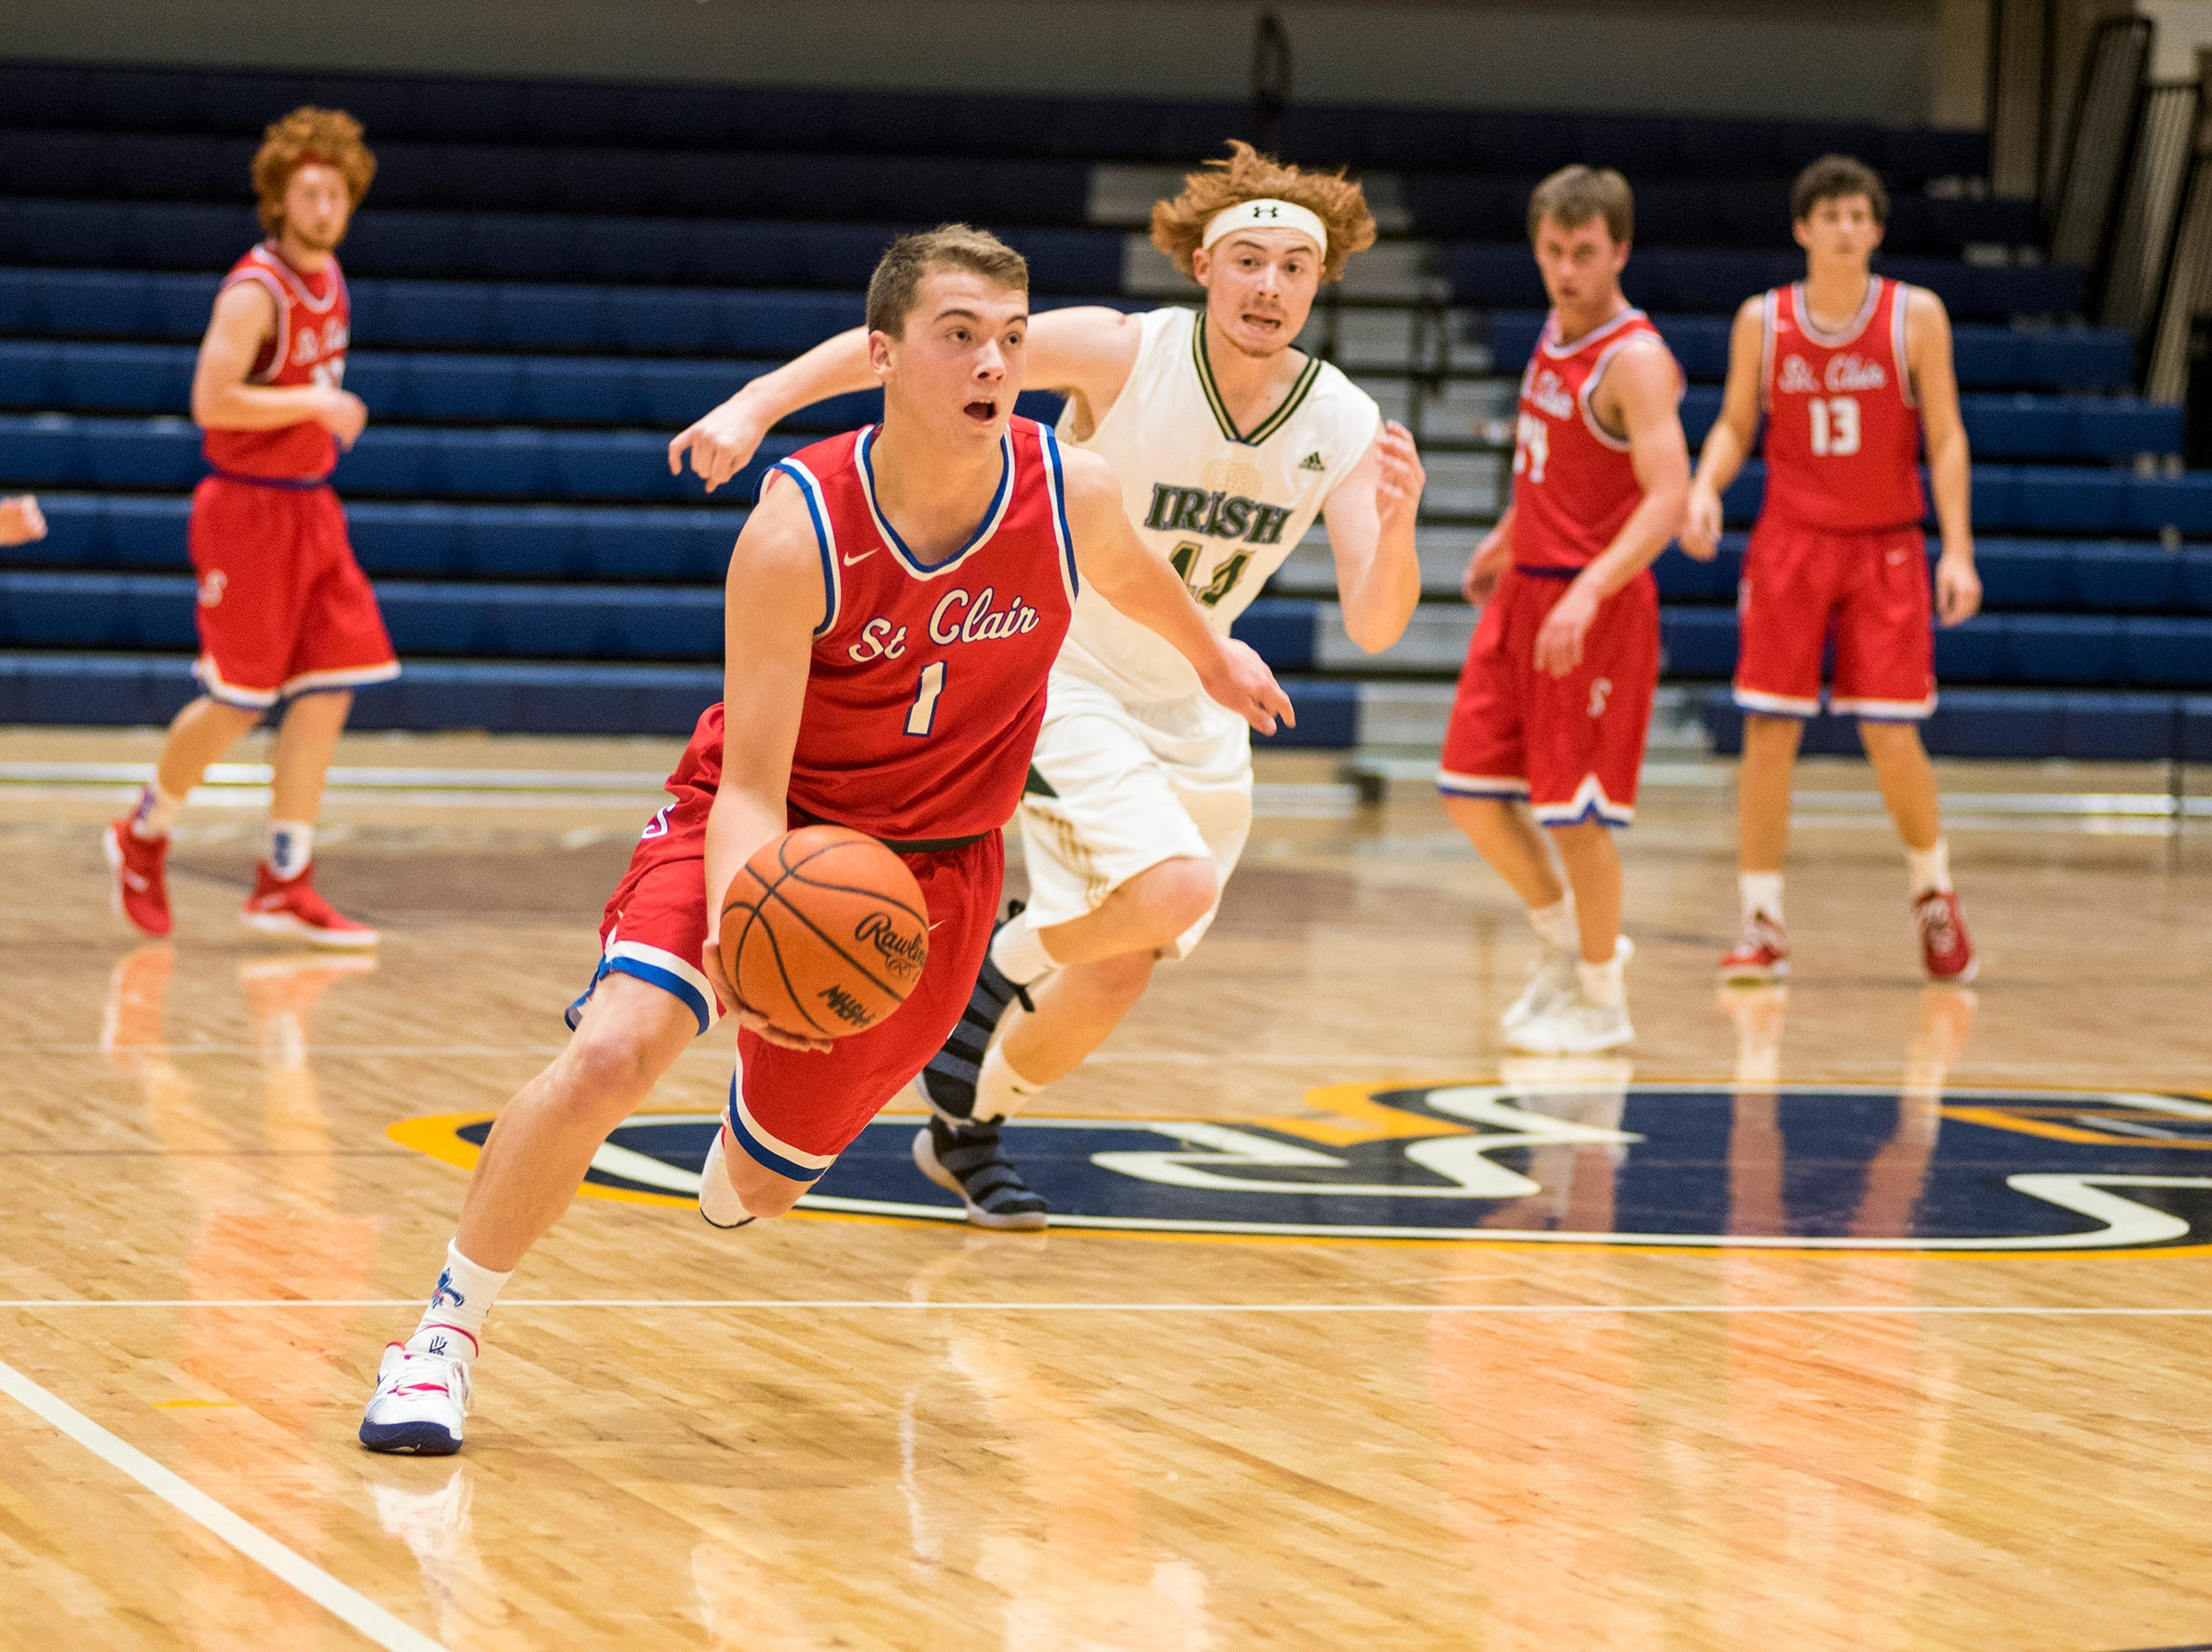 St. Clair High School guard Austin Schweiger dribbles the ball down the court during their SC4 Holiday Basketball Showcase game against Sarnia St. Patrick's Catholic High School  Friday, Dec. 28, 2018 at the SC4 Fieldhouse.